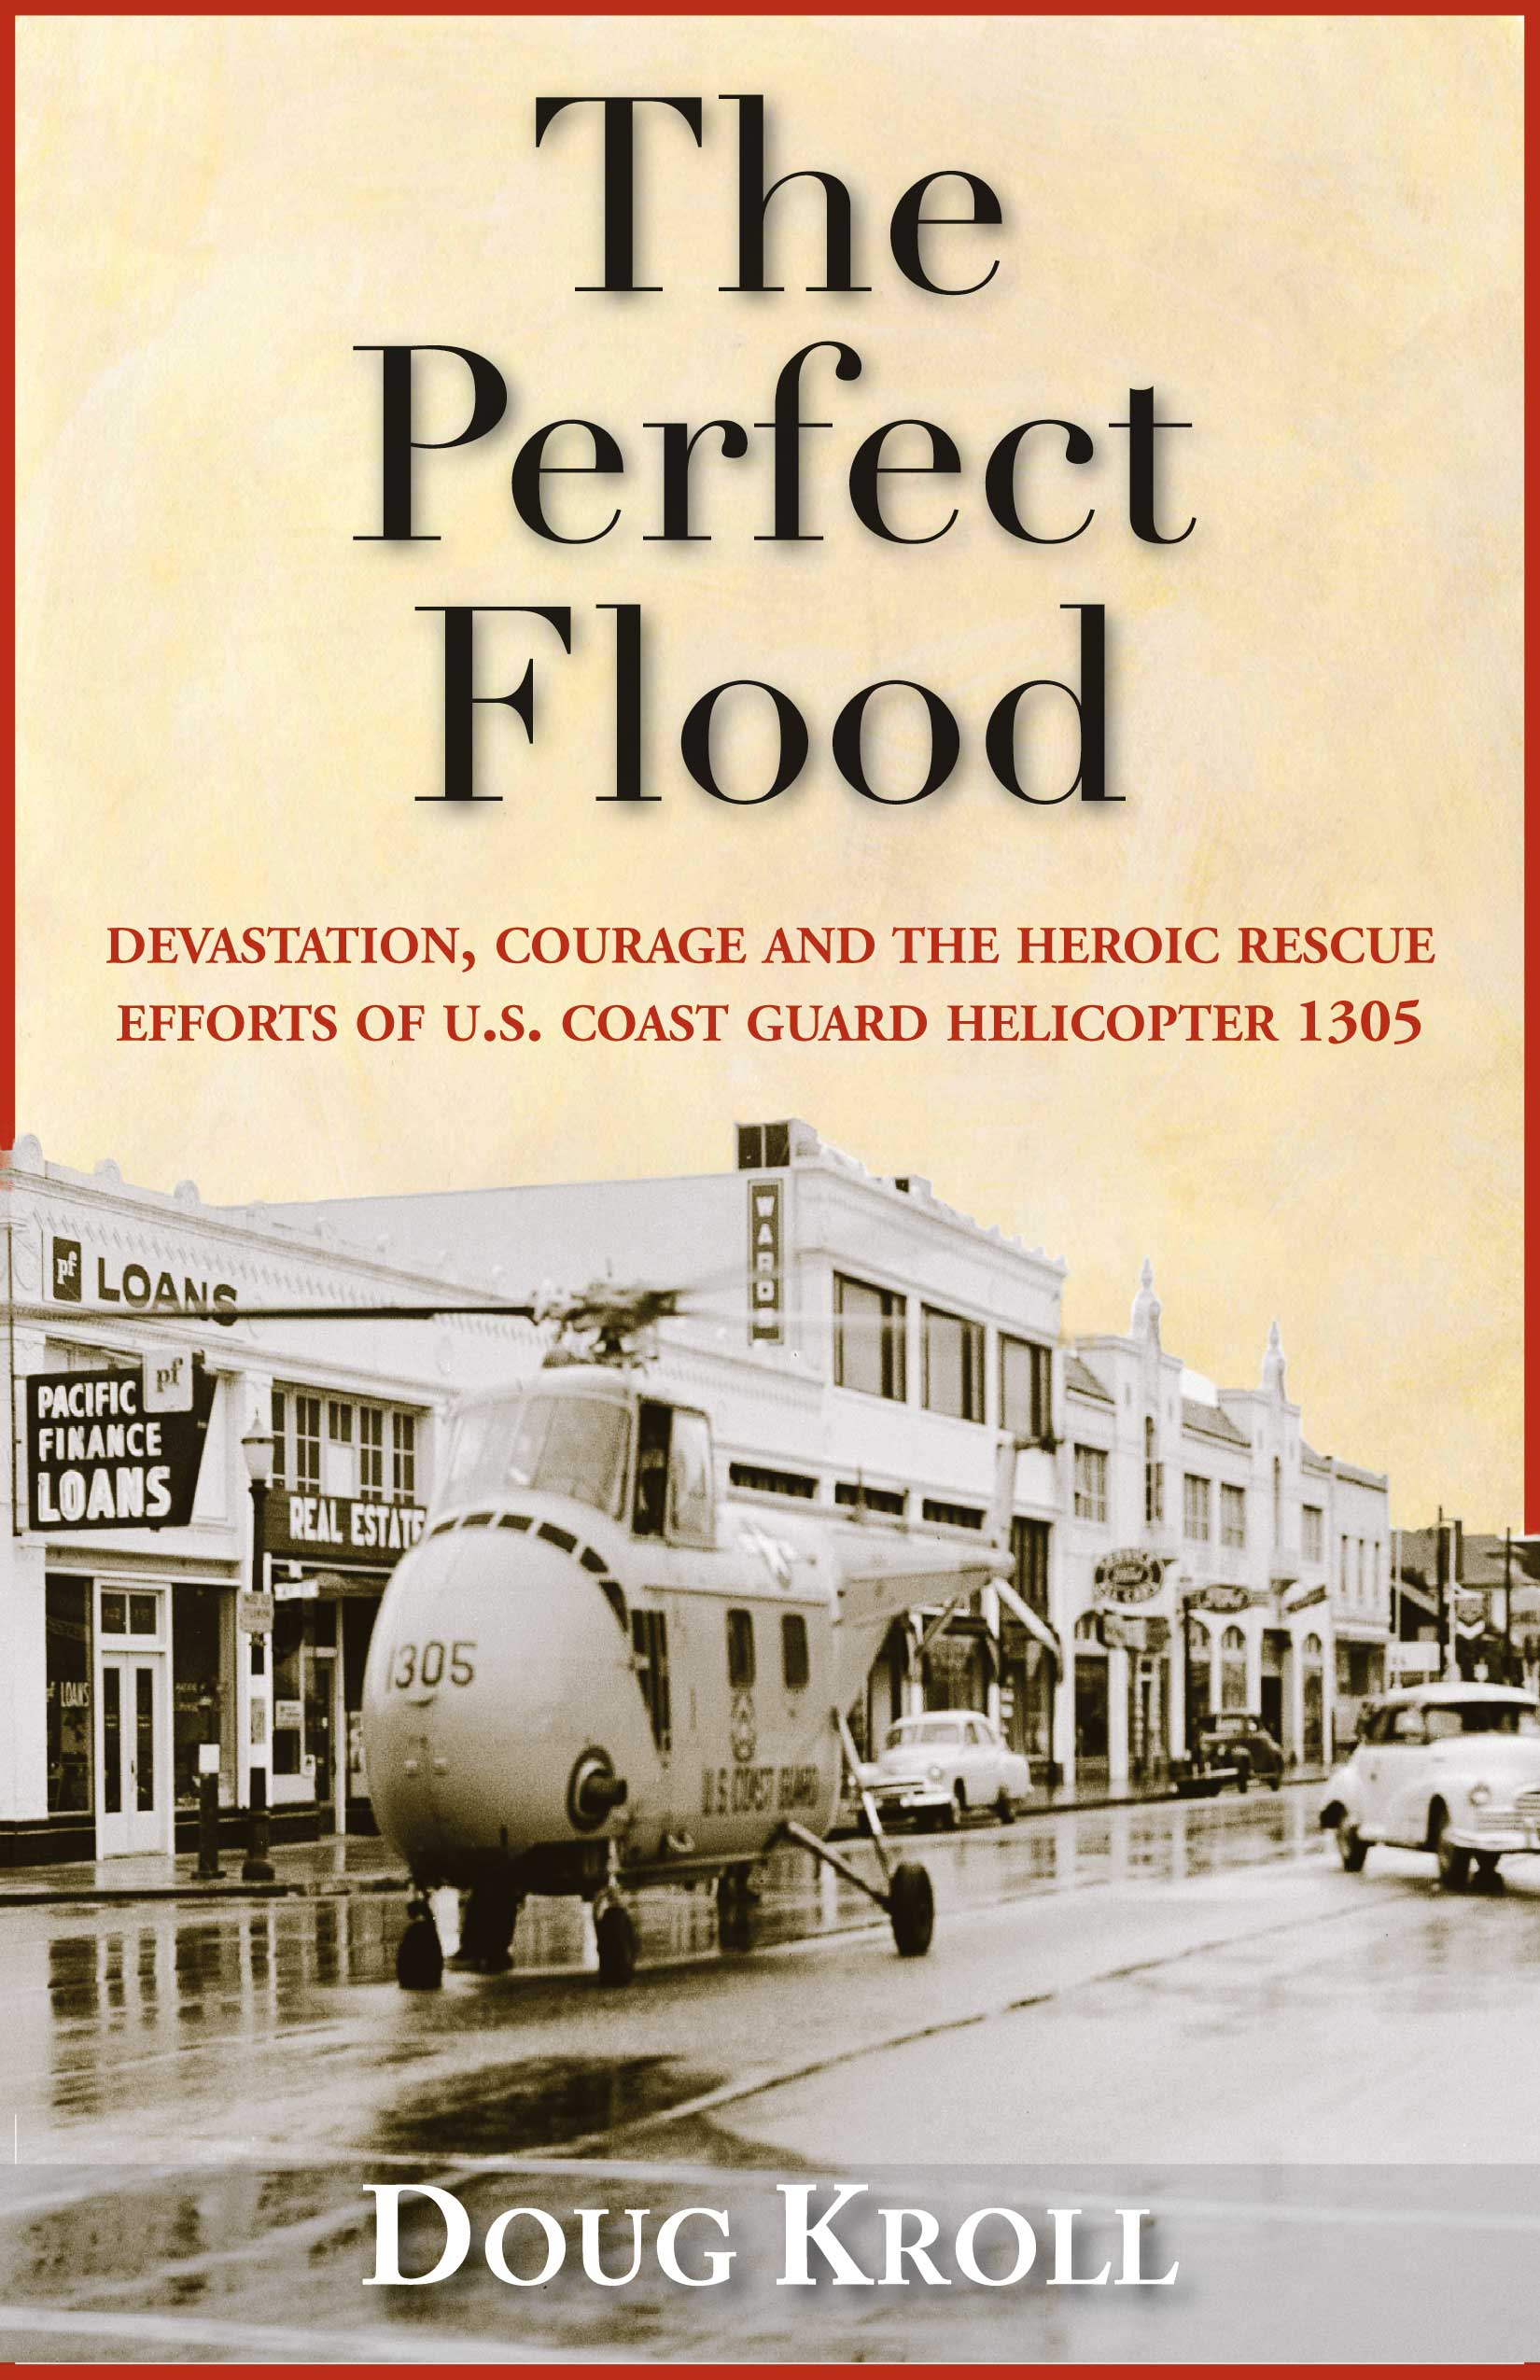 The Perfect Flood